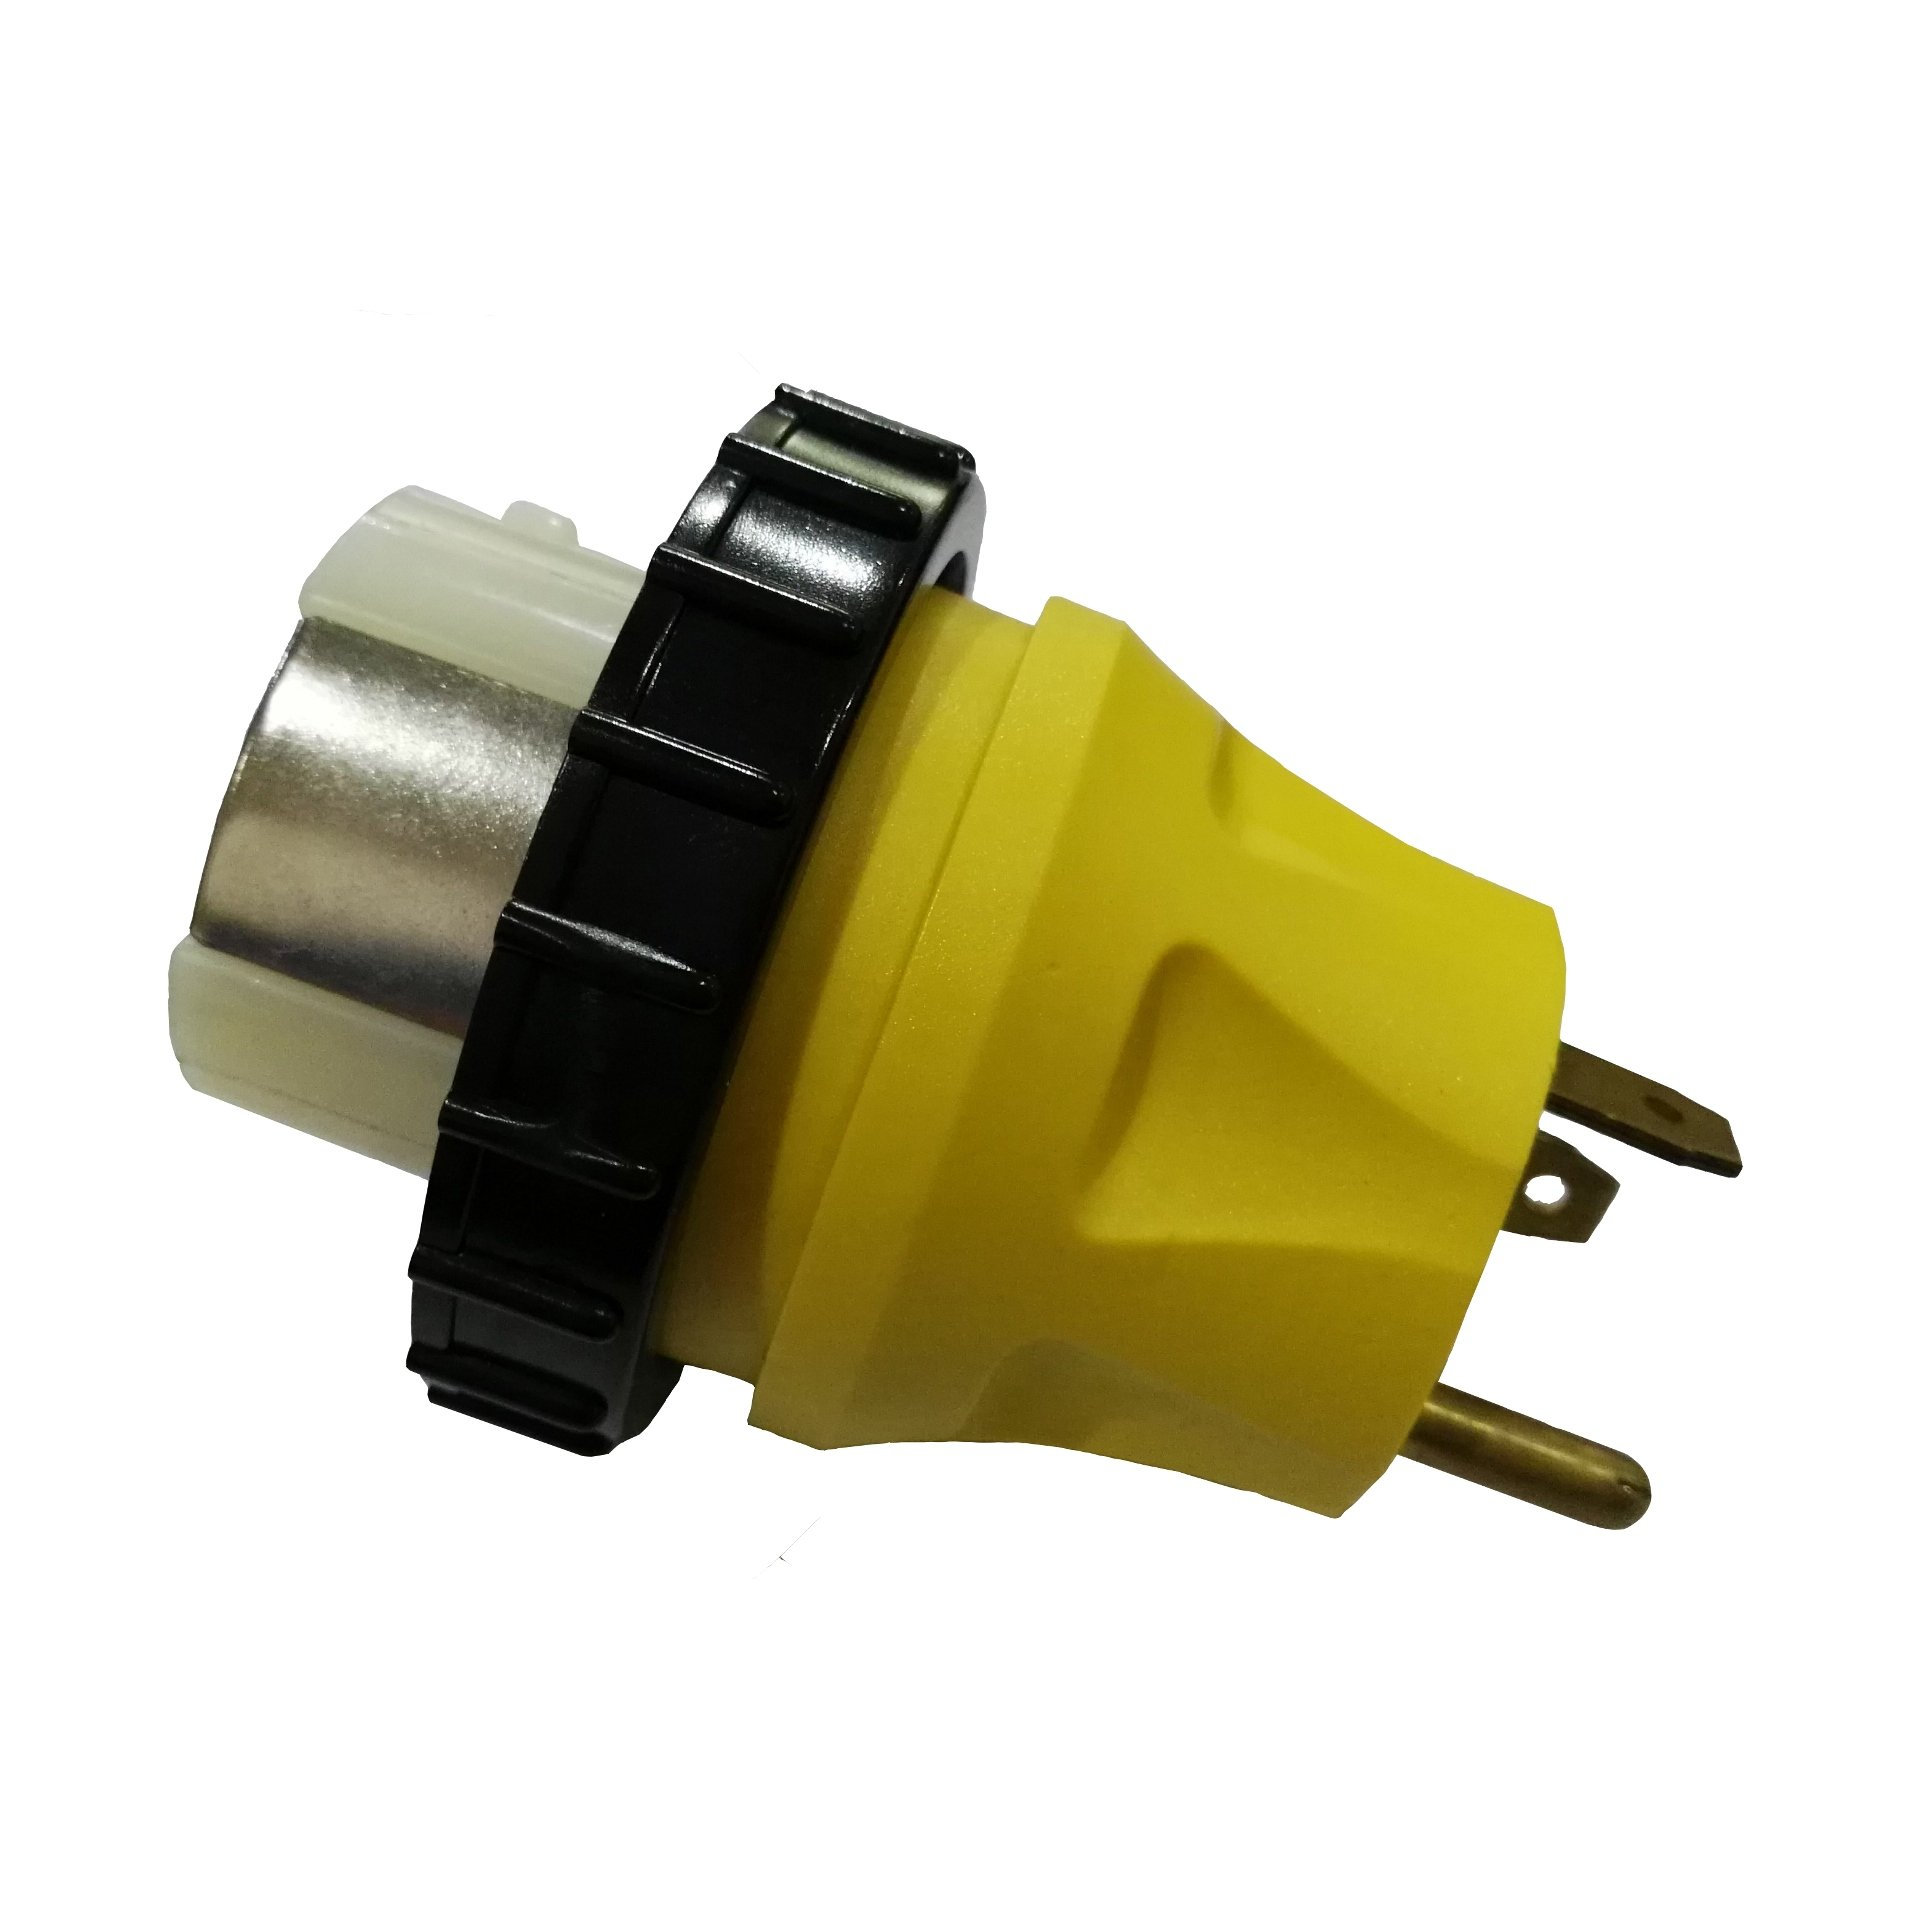 Parkworld 691722 RV Adapter RV 30A TT-30P male to Shore Power 50A SS2-50R female (two hots bridged) with locking ring